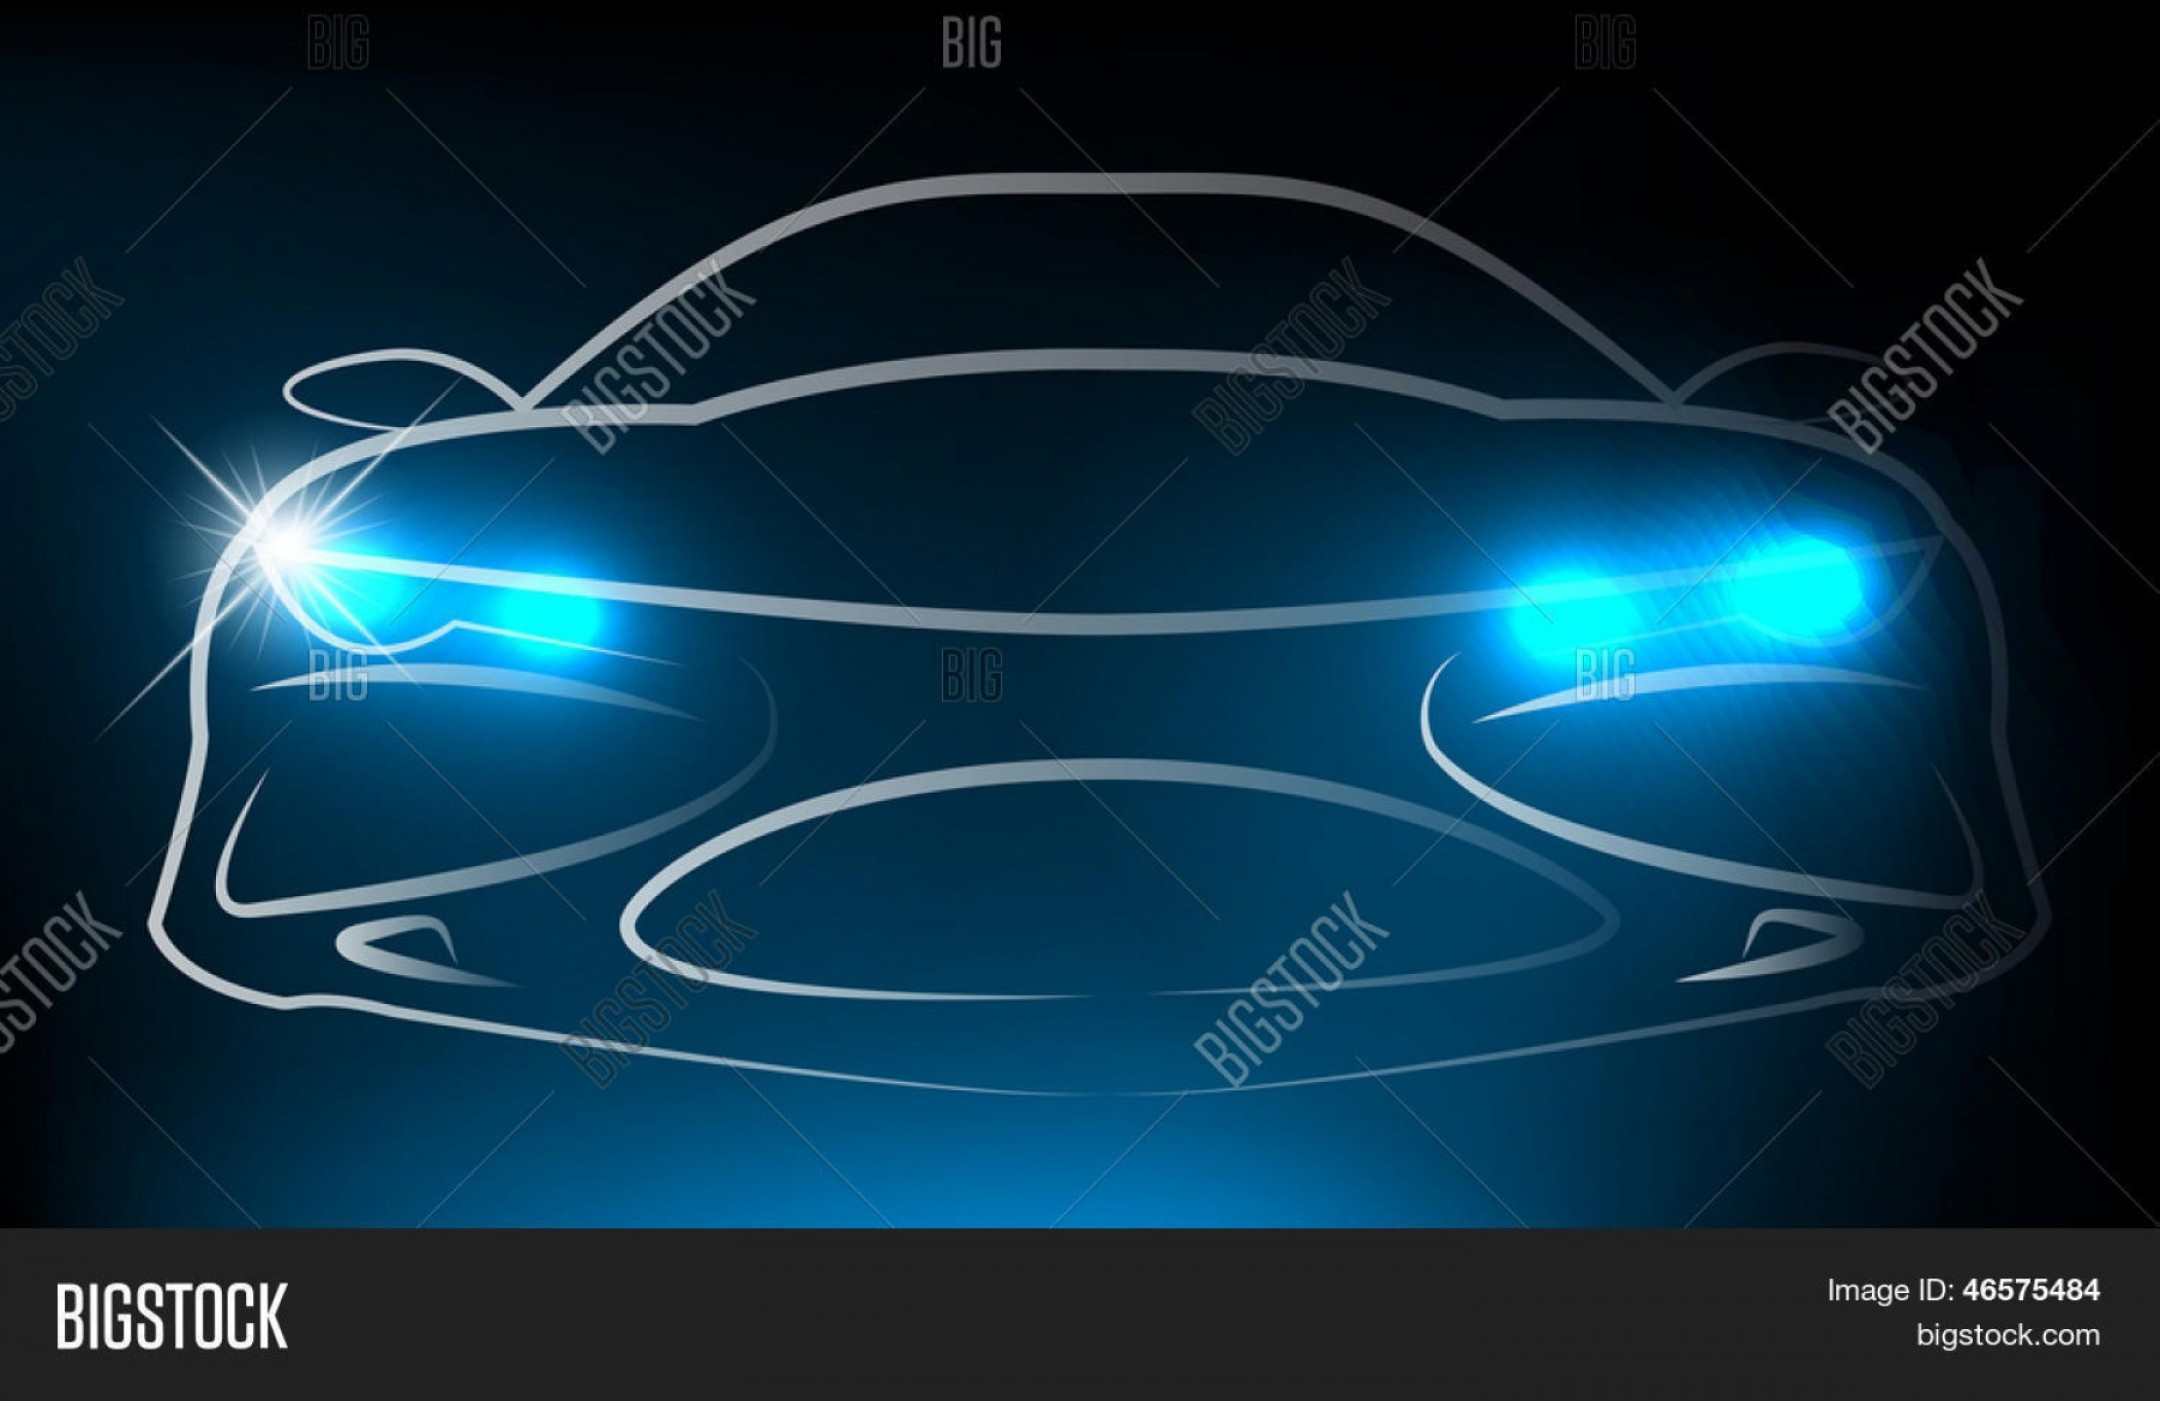 Vector Round Headlight: Stock Vector Silhouette Of Car With Headlight Vector Illustration